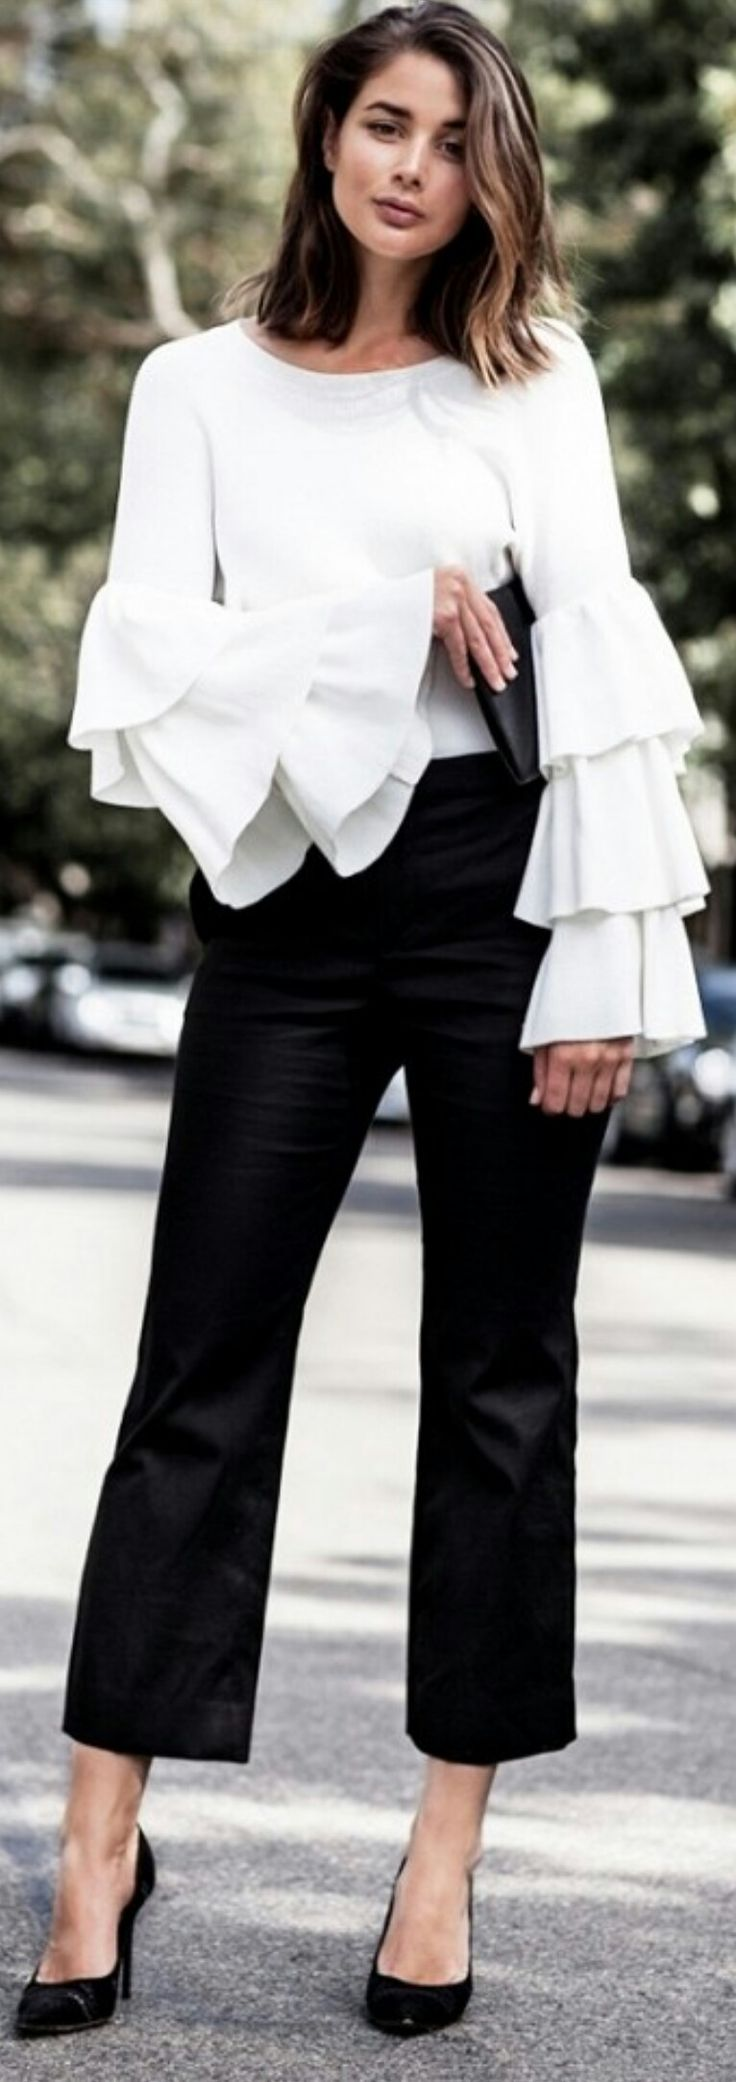 Style Tip: Pair tiered ruffled sleeves with a pair of smart trousers and pumps